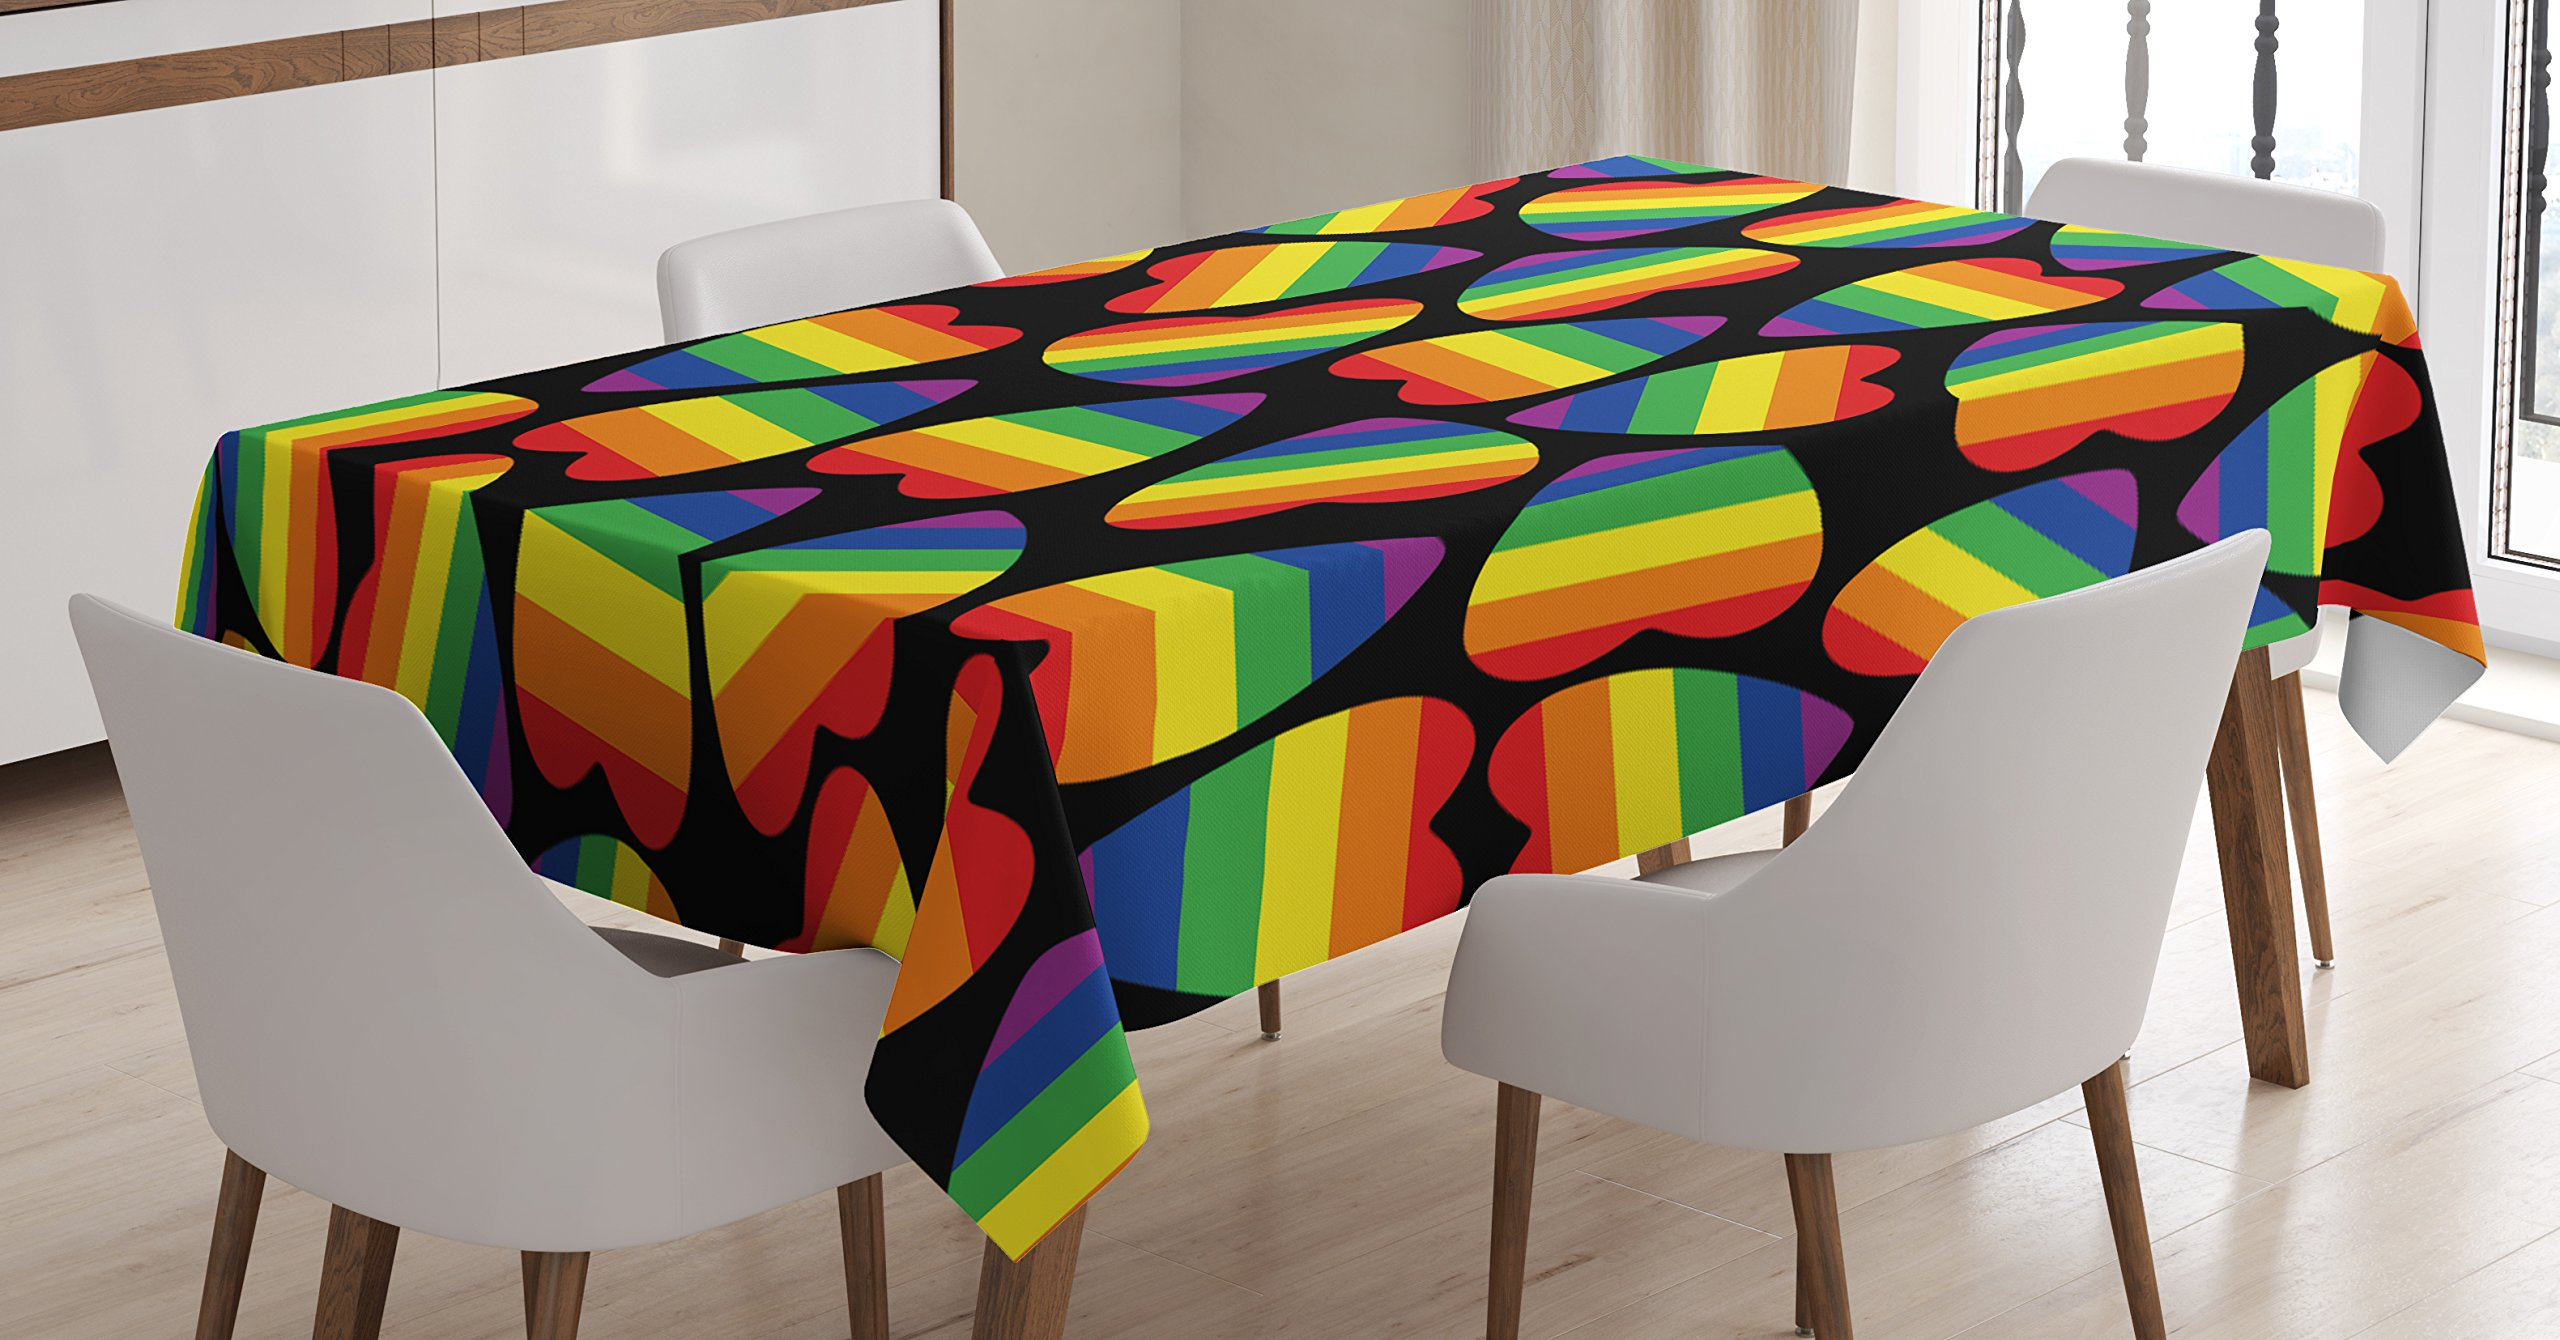 Ambesonne Pride Tablecloth, Rainbow Colored Striped Heart Shapes on Black Backdrop Gay Lesbian Love Parade Print, Dining Room Kitchen Rectangular Table Cover, 60 W X 84 L inches, Multicolor